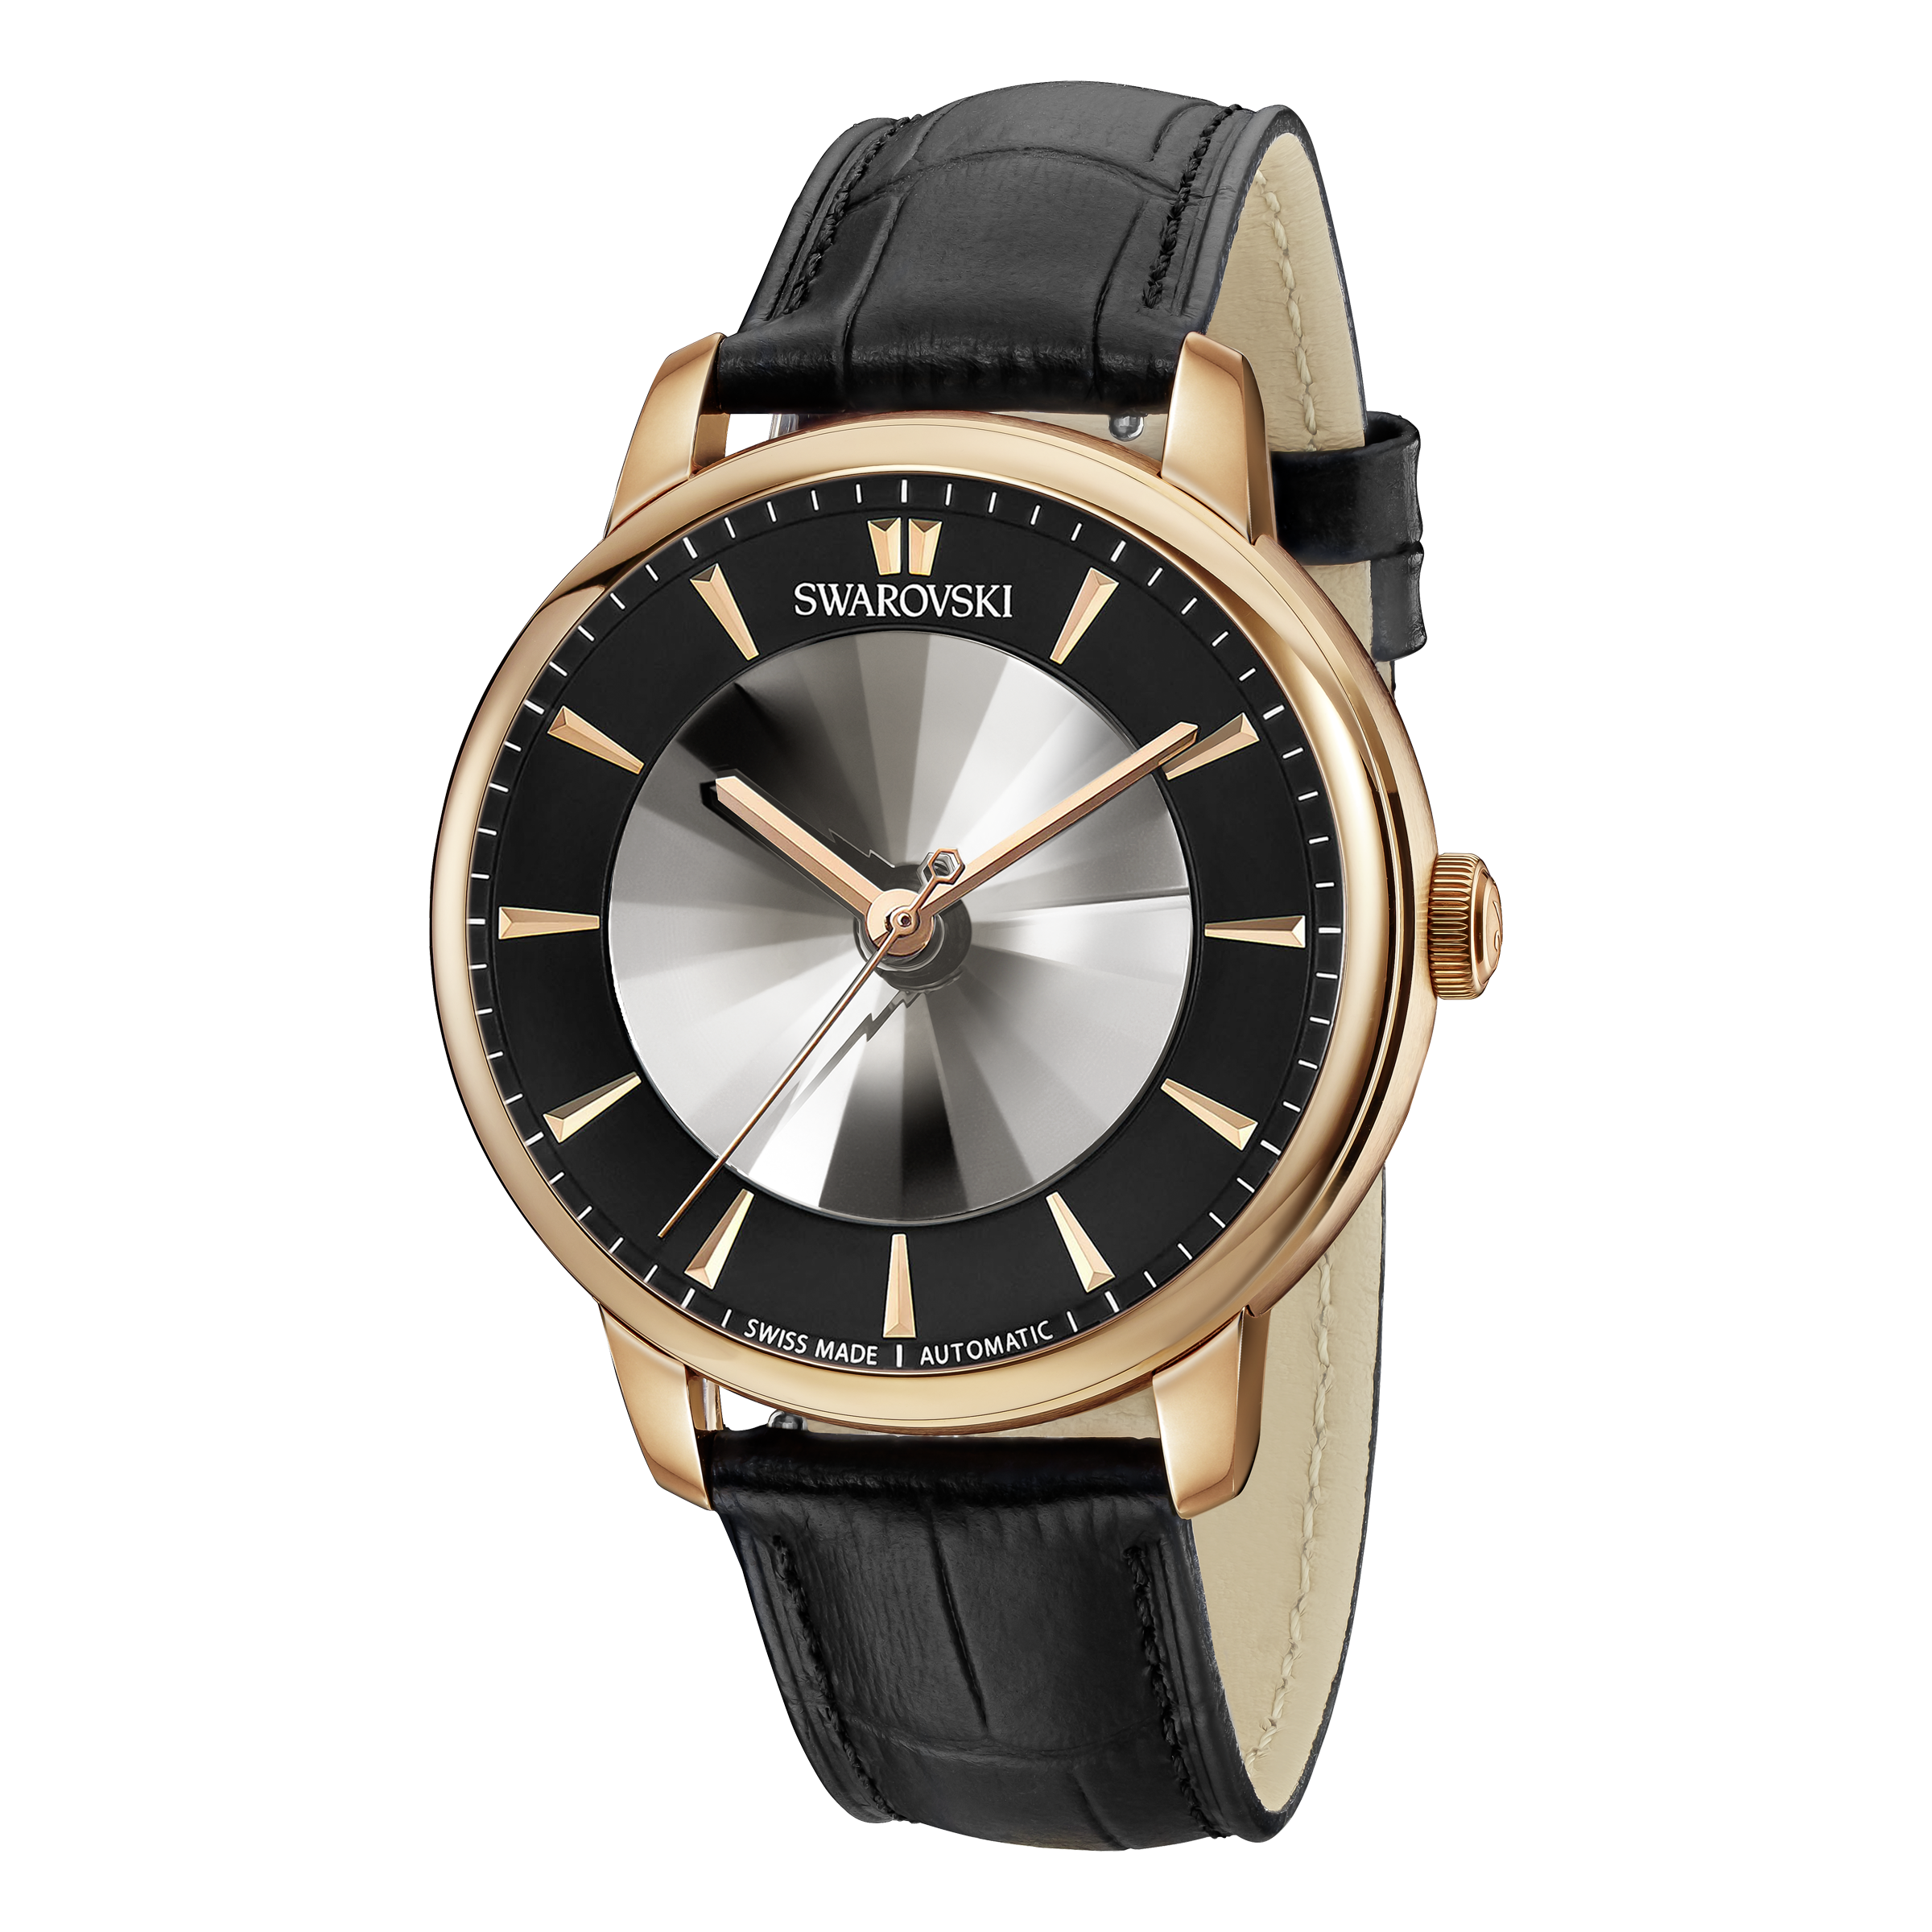 Atlantis Limited Edition Automatic Men's Watch, Leather strap, Black, Rose-gold tone PVD